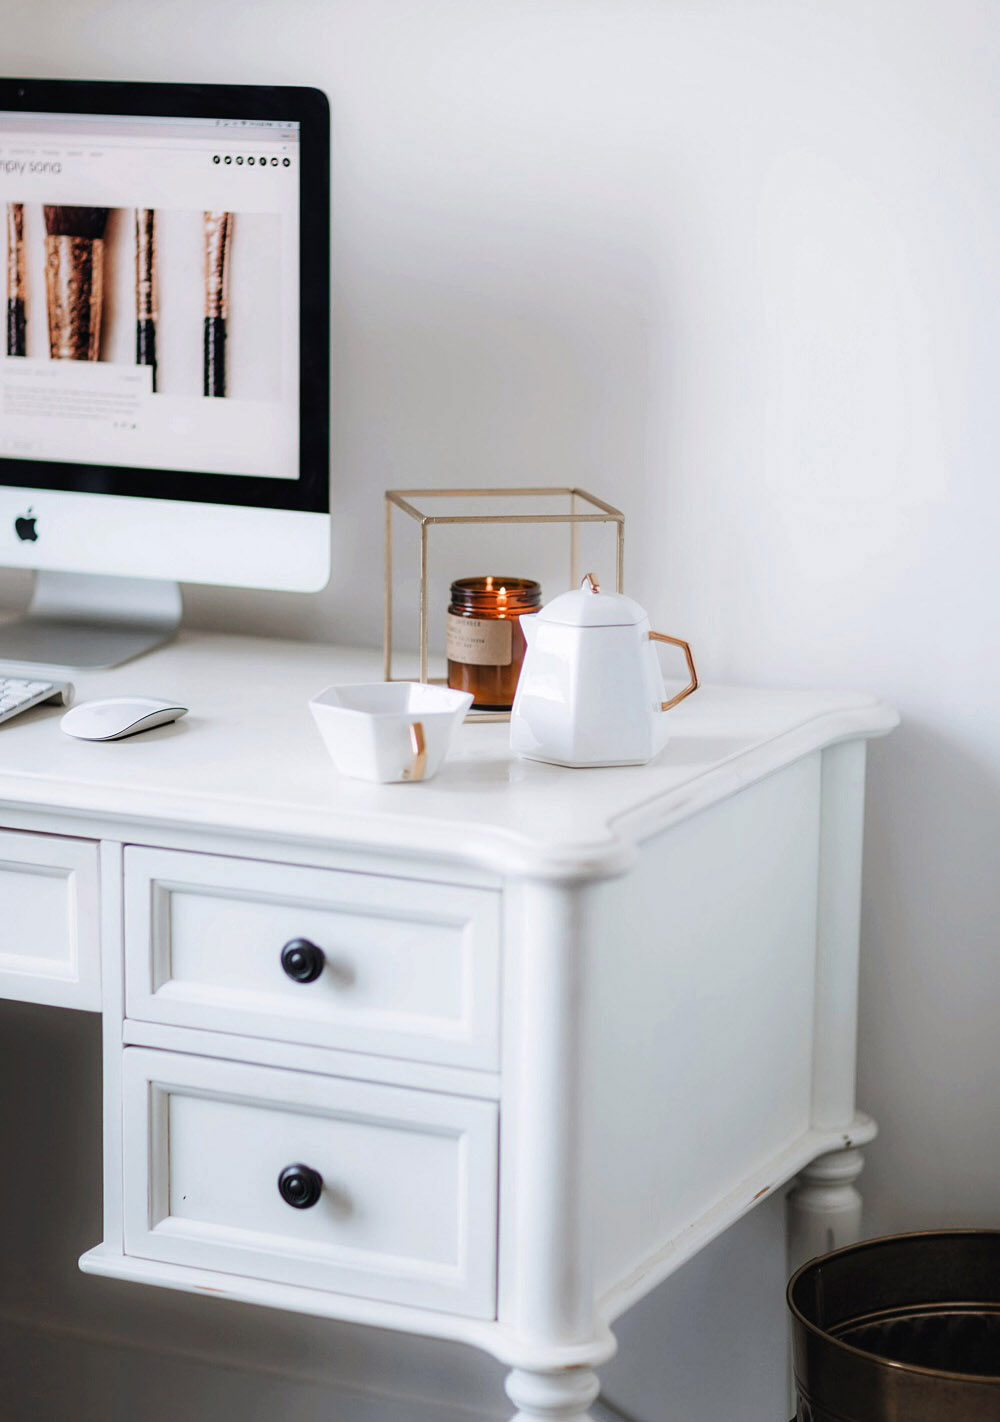 Some details on my desk at my beauty room tour